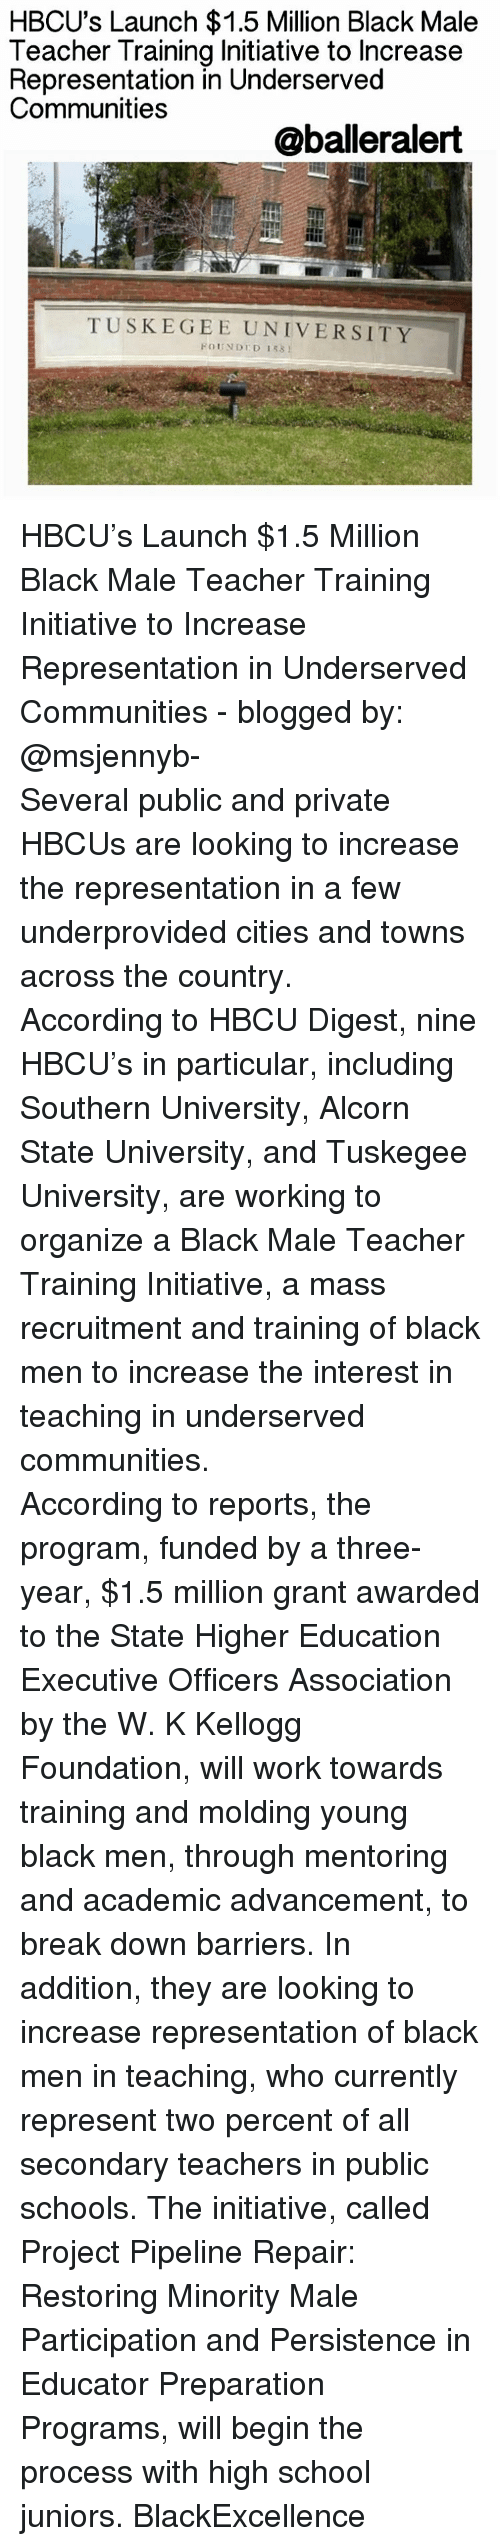 Memes, 🤖, and Project: HBCU's Launch $1.5 Million Black Male  Teacher Training Initiative to Increase  Representation in Underserved  Communities  @balleralert  TUSKEGEE UNIVERSITY  Fn NDT 133 HBCU's Launch $1.5 Million Black Male Teacher Training Initiative to Increase Representation in Underserved Communities - blogged by: @msjennyb- ⠀⠀⠀⠀⠀⠀⠀⠀⠀ ⠀⠀⠀⠀⠀⠀⠀⠀⠀ Several public and private HBCUs are looking to increase the representation in a few underprovided cities and towns across the country. ⠀⠀⠀⠀⠀⠀⠀⠀⠀ ⠀⠀⠀⠀⠀⠀⠀⠀⠀ According to HBCU Digest, nine HBCU's in particular, including Southern University, Alcorn State University, and Tuskegee University, are working to organize a Black Male Teacher Training Initiative, a mass recruitment and training of black men to increase the interest in teaching in underserved communities. ⠀⠀⠀⠀⠀⠀⠀⠀⠀ ⠀⠀⠀⠀⠀⠀⠀⠀⠀ According to reports, the program, funded by a three-year, $1.5 million grant awarded to the State Higher Education Executive Officers Association by the W. K Kellogg Foundation, will work towards training and molding young black men, through mentoring and academic advancement, to break down barriers. In addition, they are looking to increase representation of black men in teaching, who currently represent two percent of all secondary teachers in public schools. The initiative, called Project Pipeline Repair: Restoring Minority Male Participation and Persistence in Educator Preparation Programs, will begin the process with high school juniors. BlackExcellence